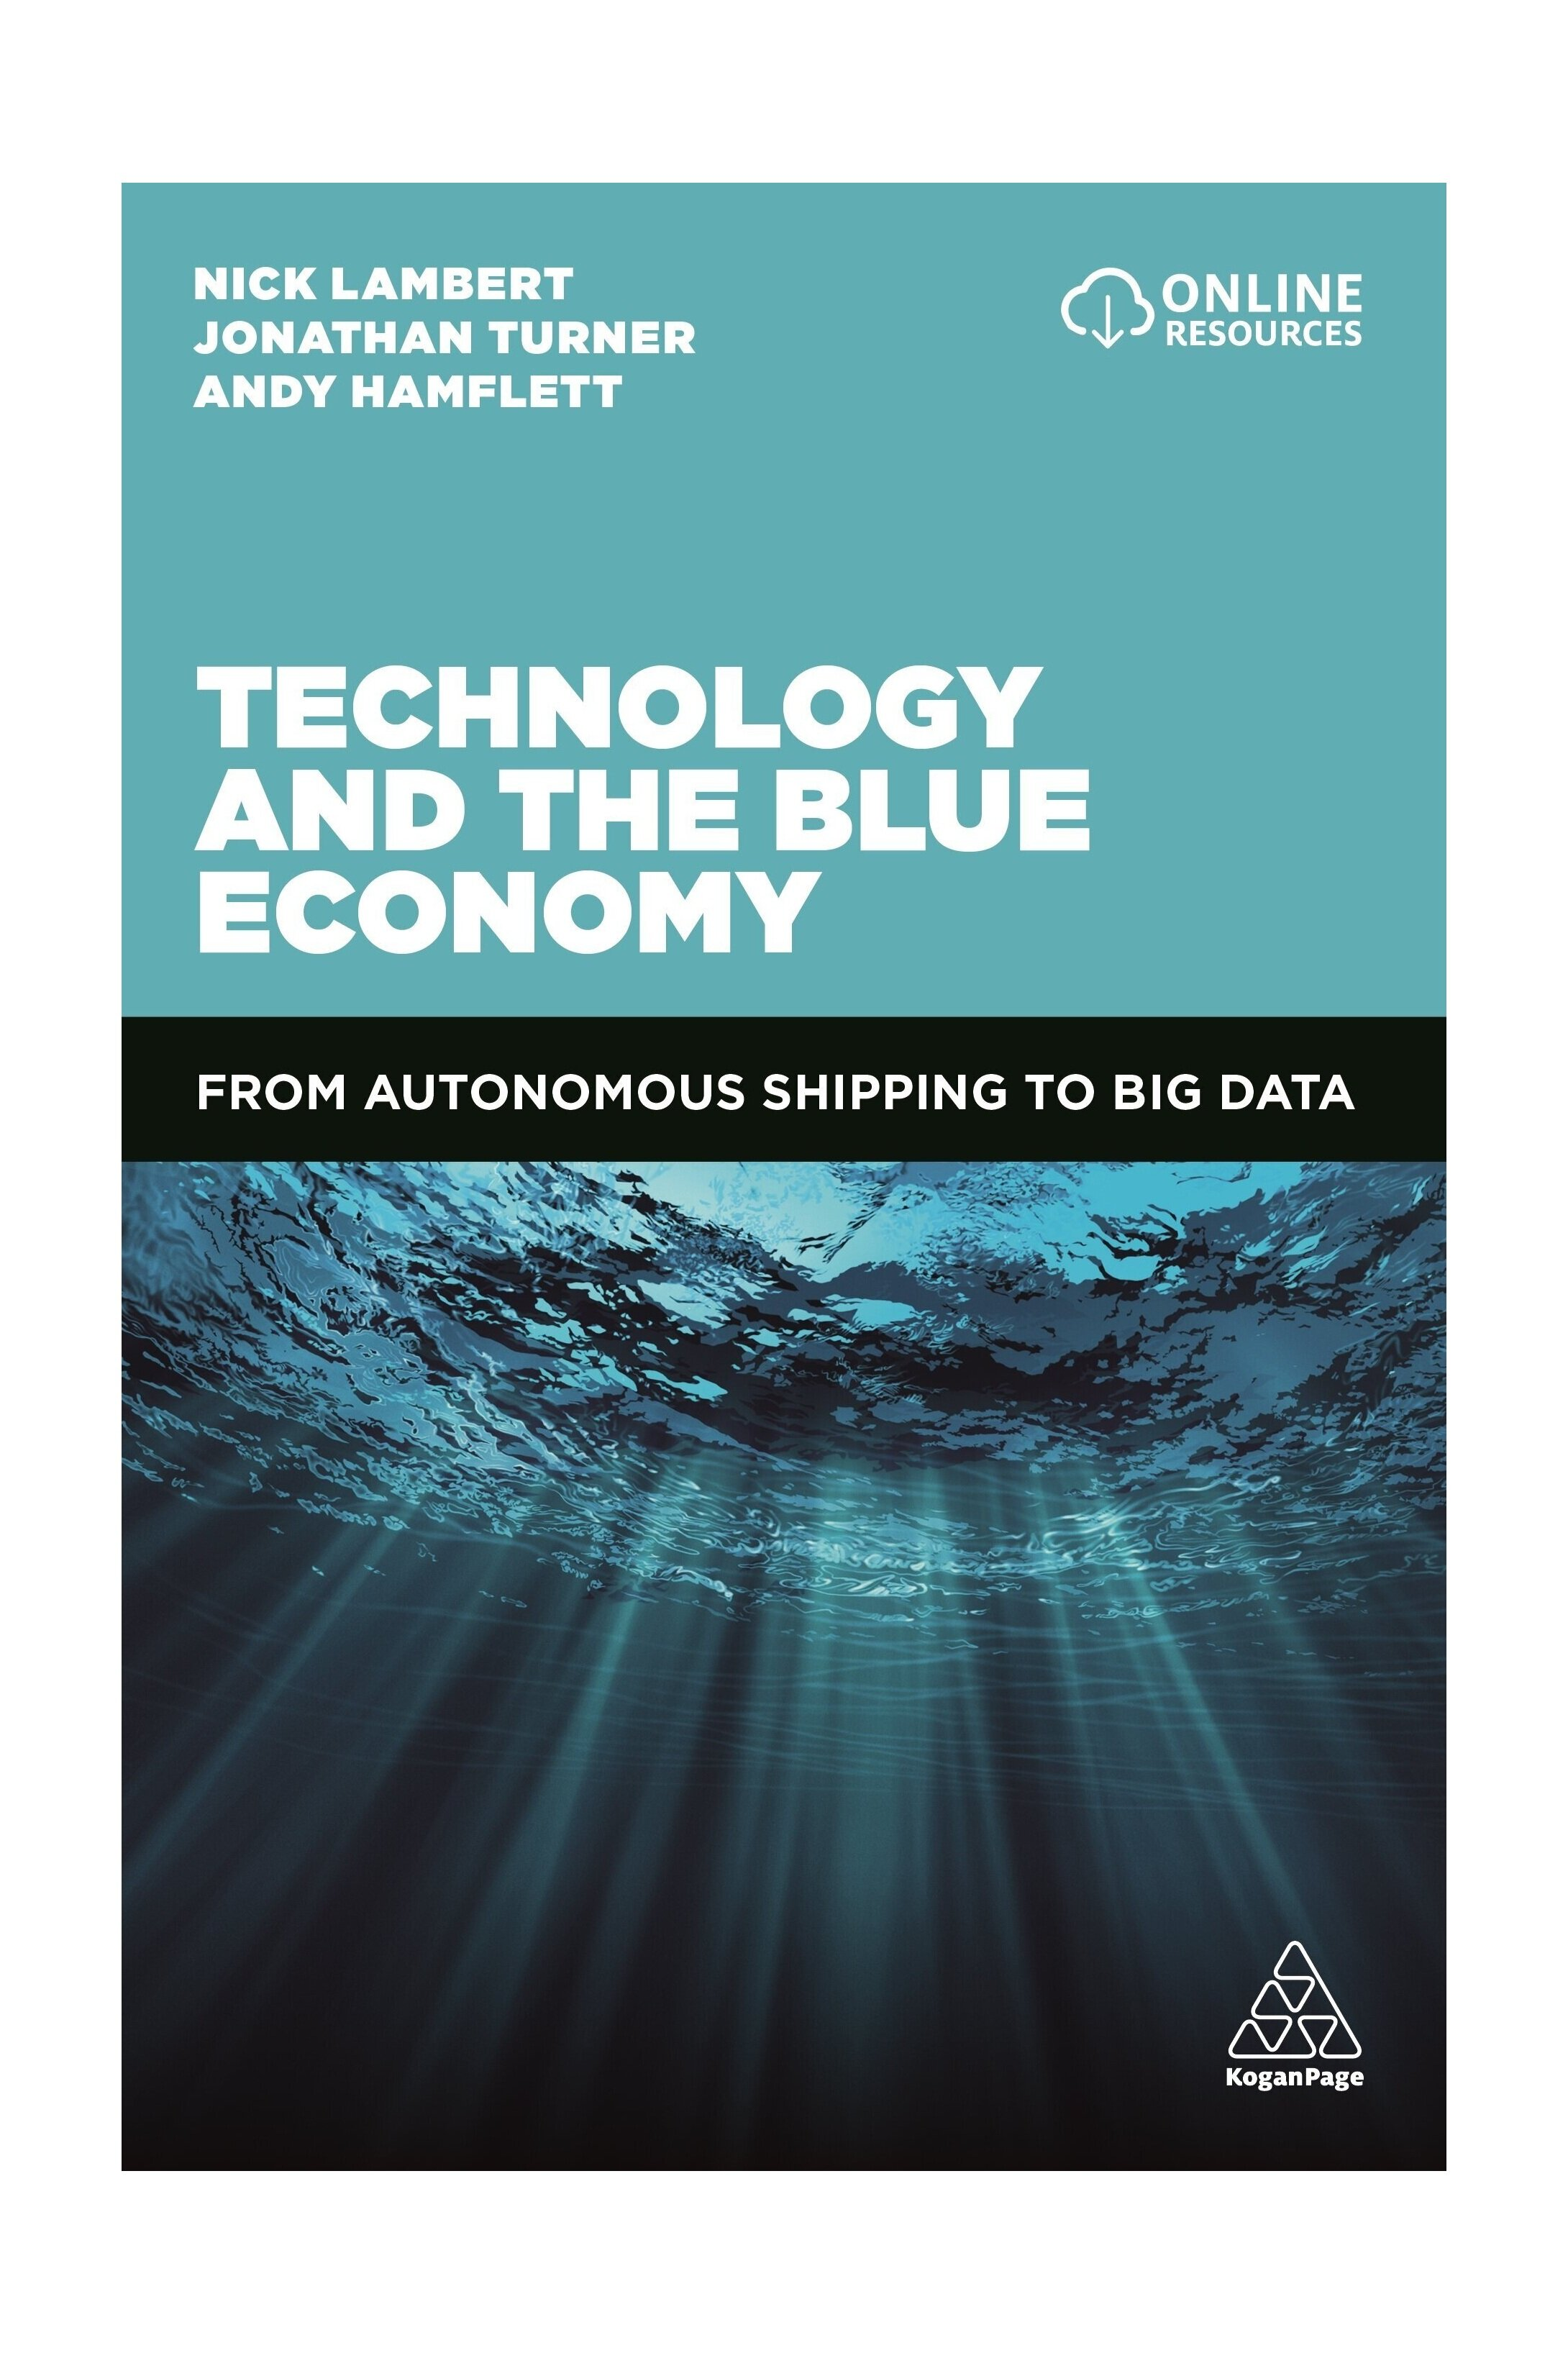 Our latest book is out now - Click here to buy copies and use code ALGBE10 for a 10% discount.70 per cent of the planet is covered by water, and 90 per cent of global economic trade is transported by sea. The world's seas and oceans are big business. Based on gross marine product, the ocean can be considered the world's seventh-largest economy, with the total global value of the Blue Economy predicted to rise to $3 trillion by 2030.Technology and the Blue Economy explores how innovators can develop the right business models to capitalise on growth opportunities, and analyses the critical success factors for emerging technologies.Grounded in detailed market research, and brought to life through over 250 meticulously researched case studies, Technology and the Blue Economy presents a compelling overview of an inspiring and innovative sector that includes offshore renewable energy, ports and harbours, shipping, maritime surveillance, cyber security, aquaculture and ocean conservation. It tackles questions like these:· With Earth observation satellites providing unprecedented levels of data about the ocean, can machine learning capabilities develop at pace to make sense of all this new information?· How can ships protect themselves when one shipping firm alone records 50,000 daily attempts to breach its cyber security systems?· With floating wind farms now pushing further out to sea to convert natural energy, what role do robots have in managing essential maintenance in these more remote environments?· When passenger ferries are already sailing themselves and self-docking in port without human intervention, are we entering an age where human error is eradicated?· With fish farming predicted to account for 62 per cent of all the seafood consumed globally by 2030, how can 3D imaging cameras and net-cleaning robots help to stop mass deaths of fish that can run into millions in a single incident?· In the age of smartphone ubiquity, how important a role might social media an